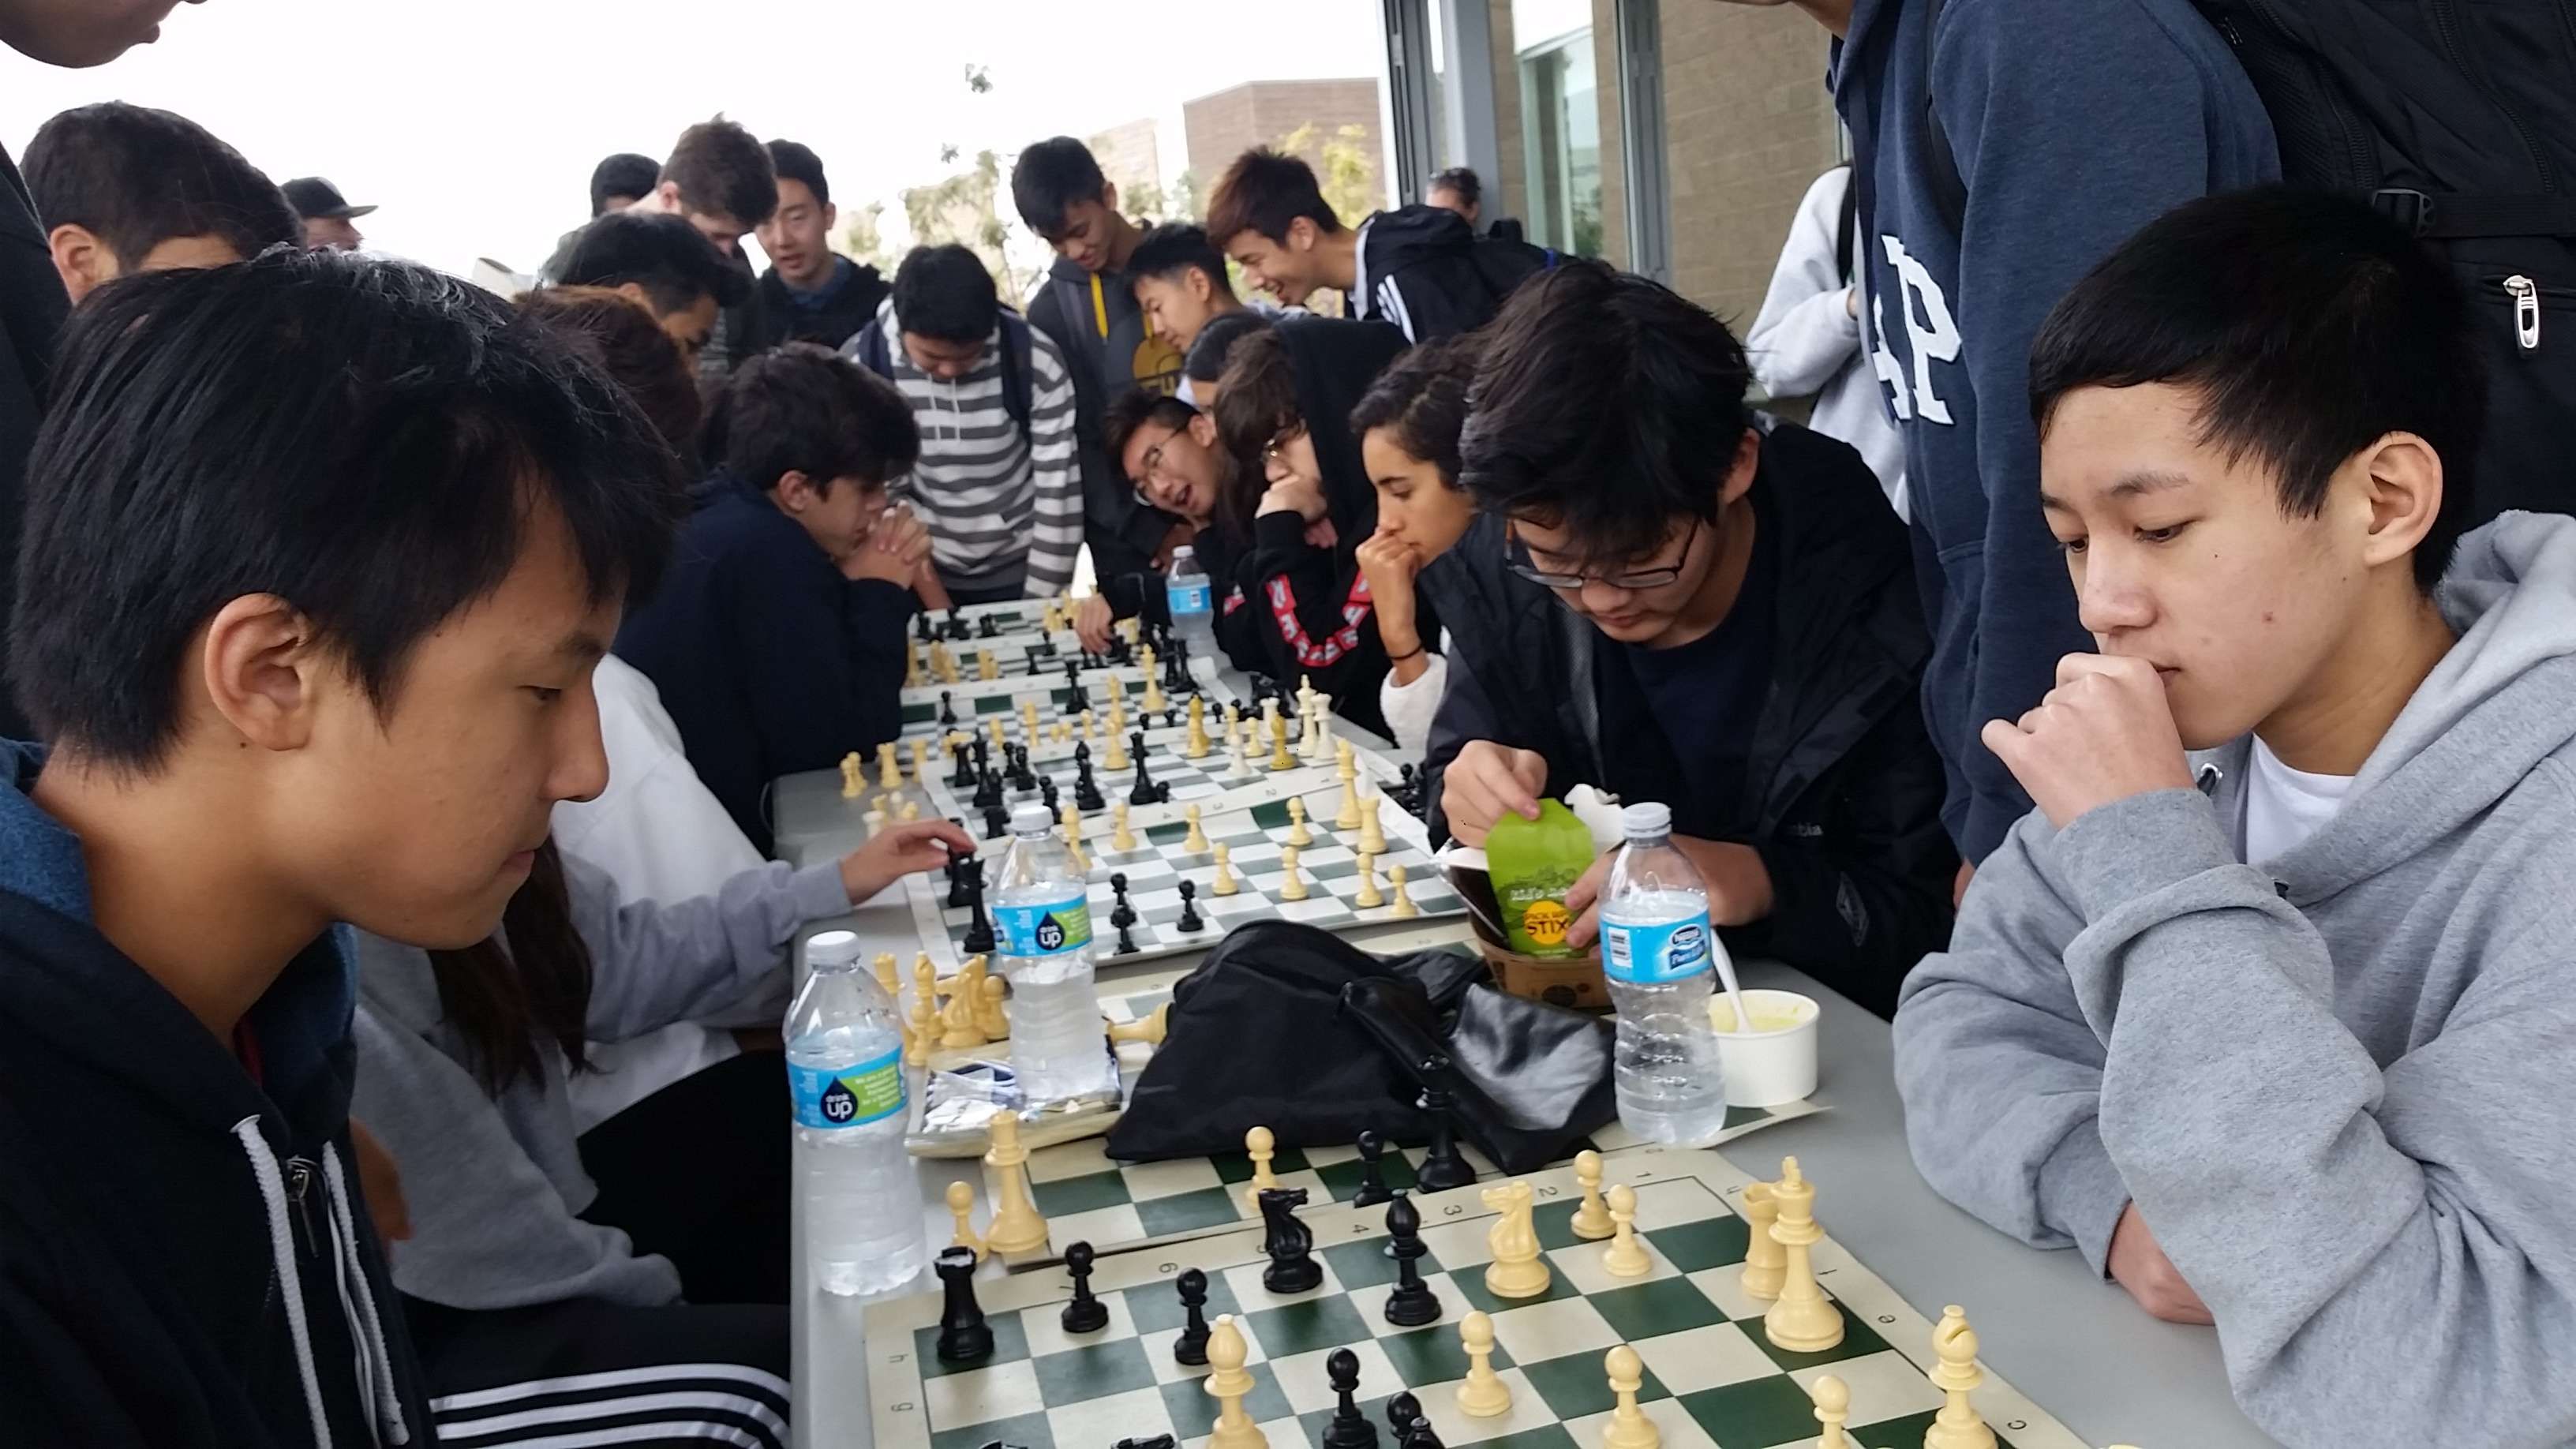 Students gather around chess boards at lunch to play chess with their friends.